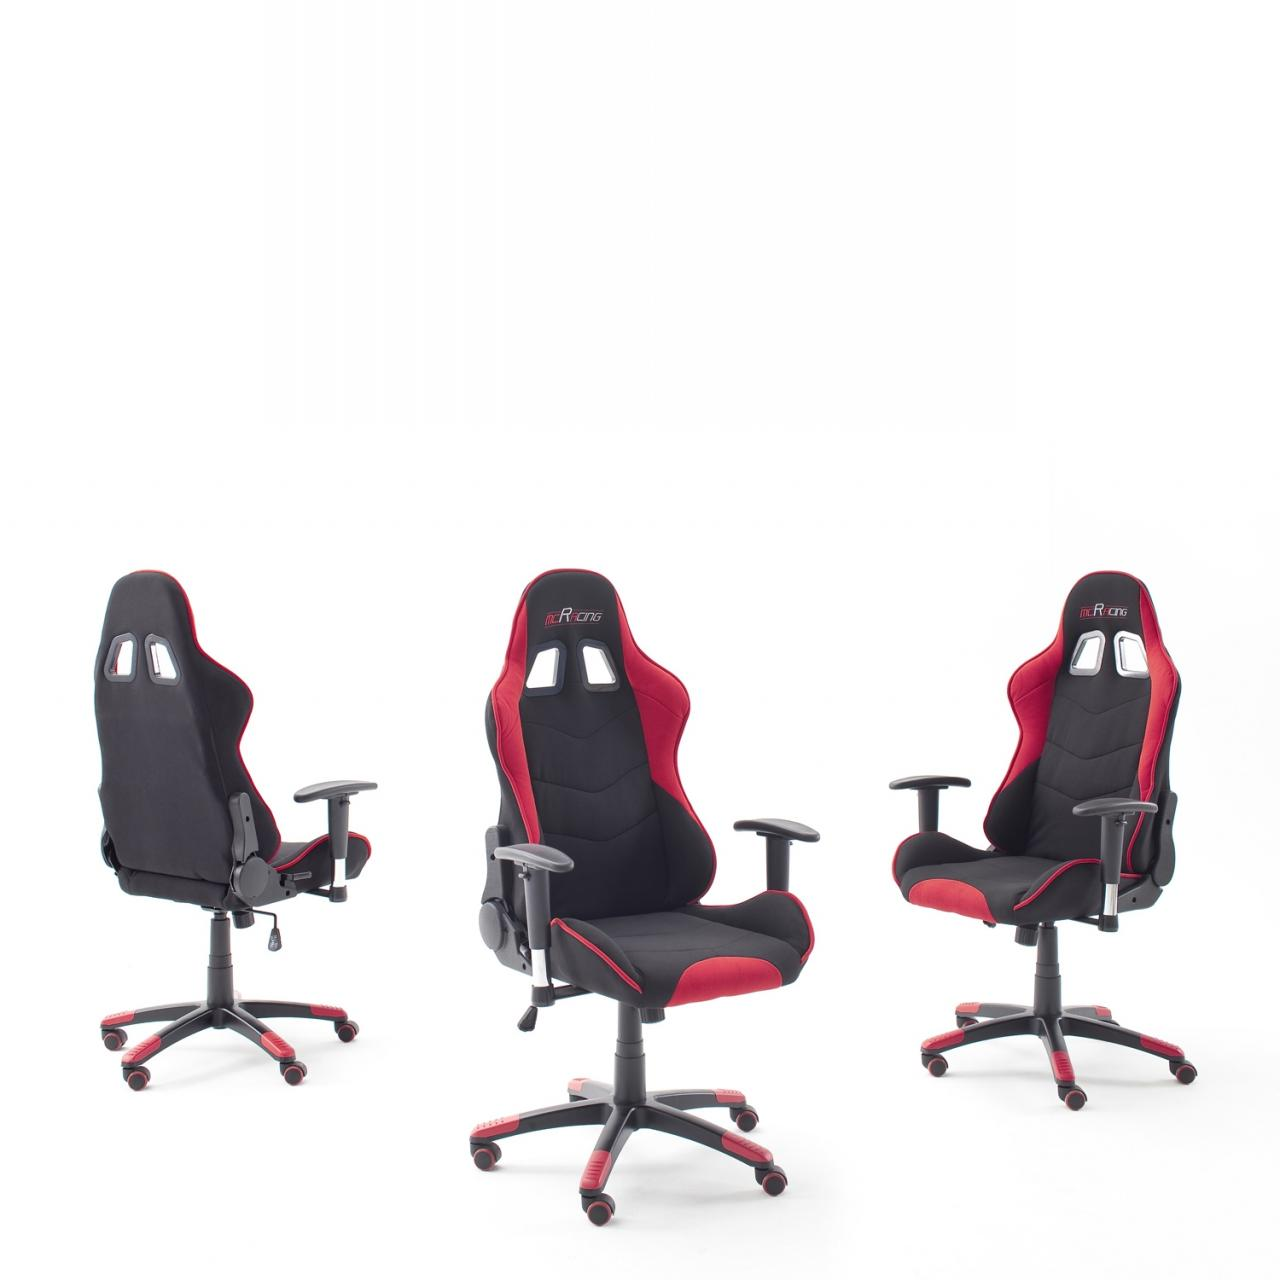 Chefsessel mcRacing Schwarz Rot Gaming Stuhl